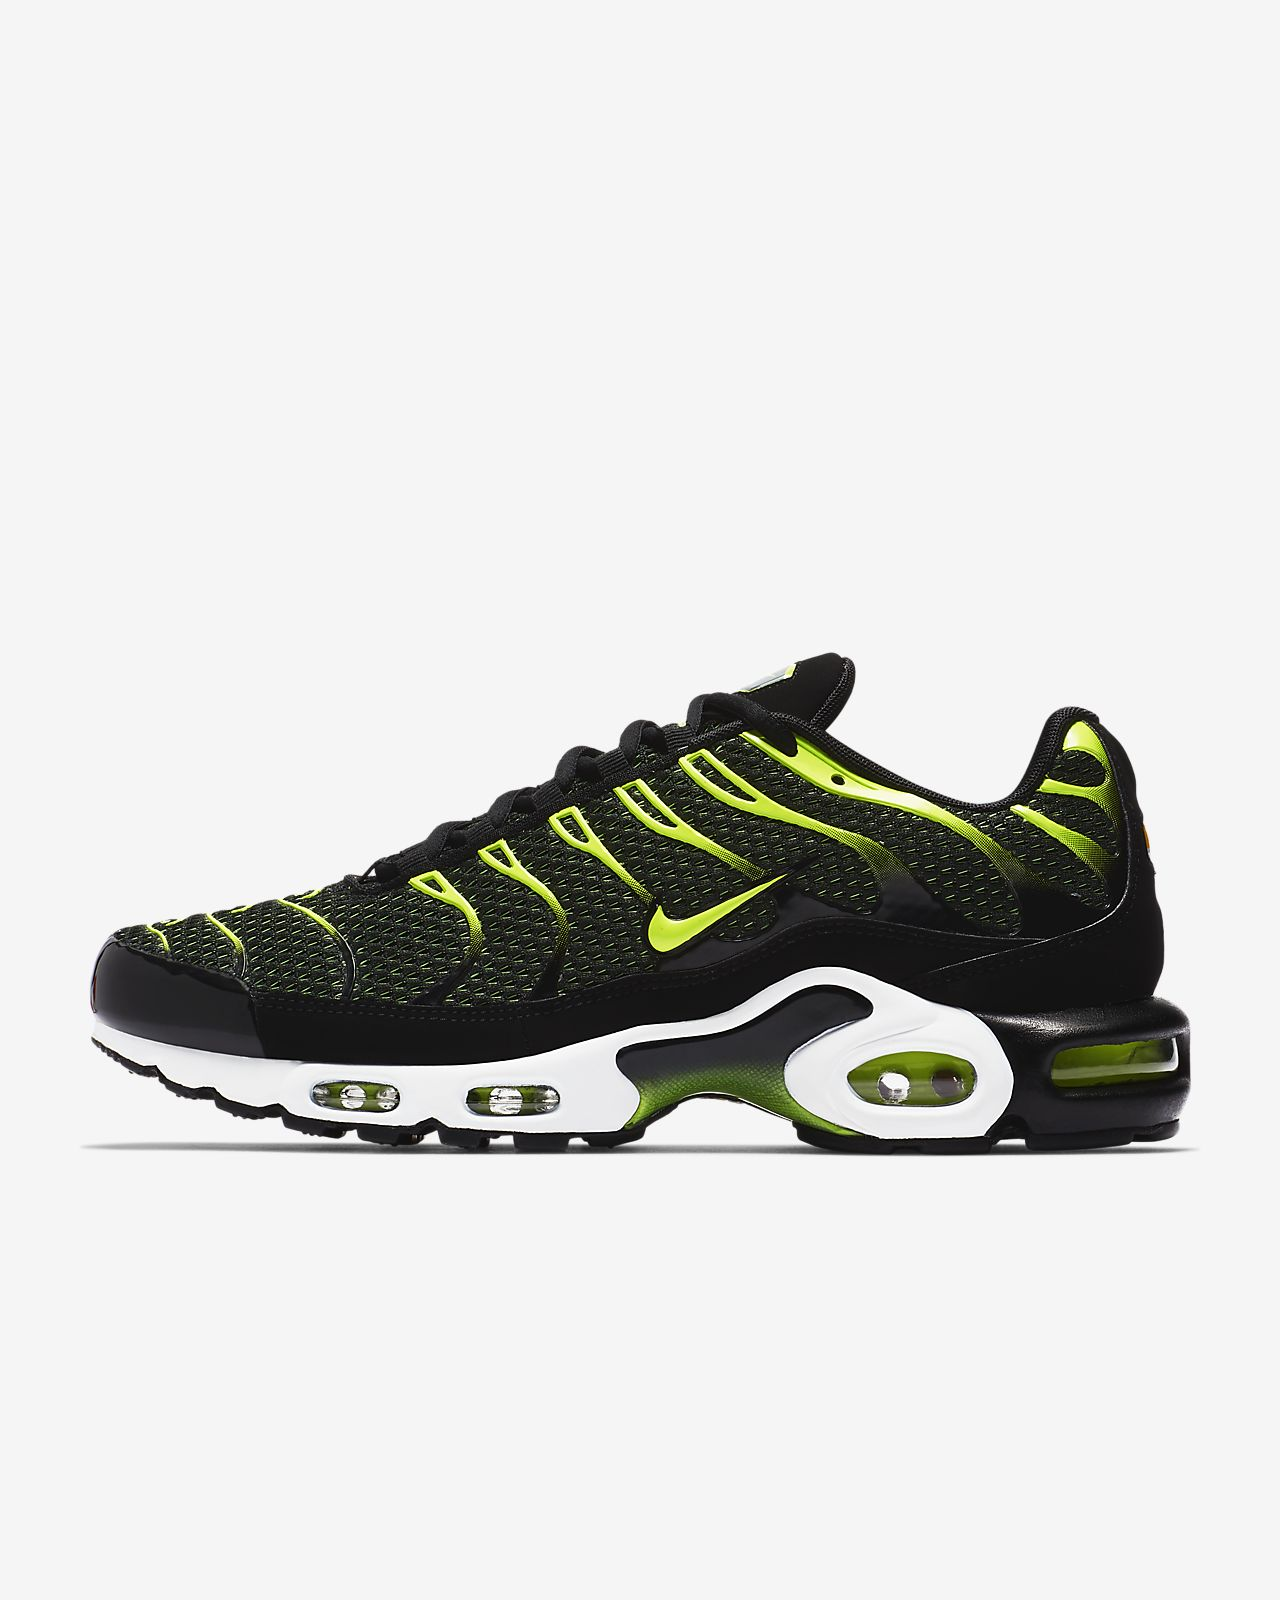 2c308f791b64 Nike Air Max Plus Men s Shoe. Nike.com GB